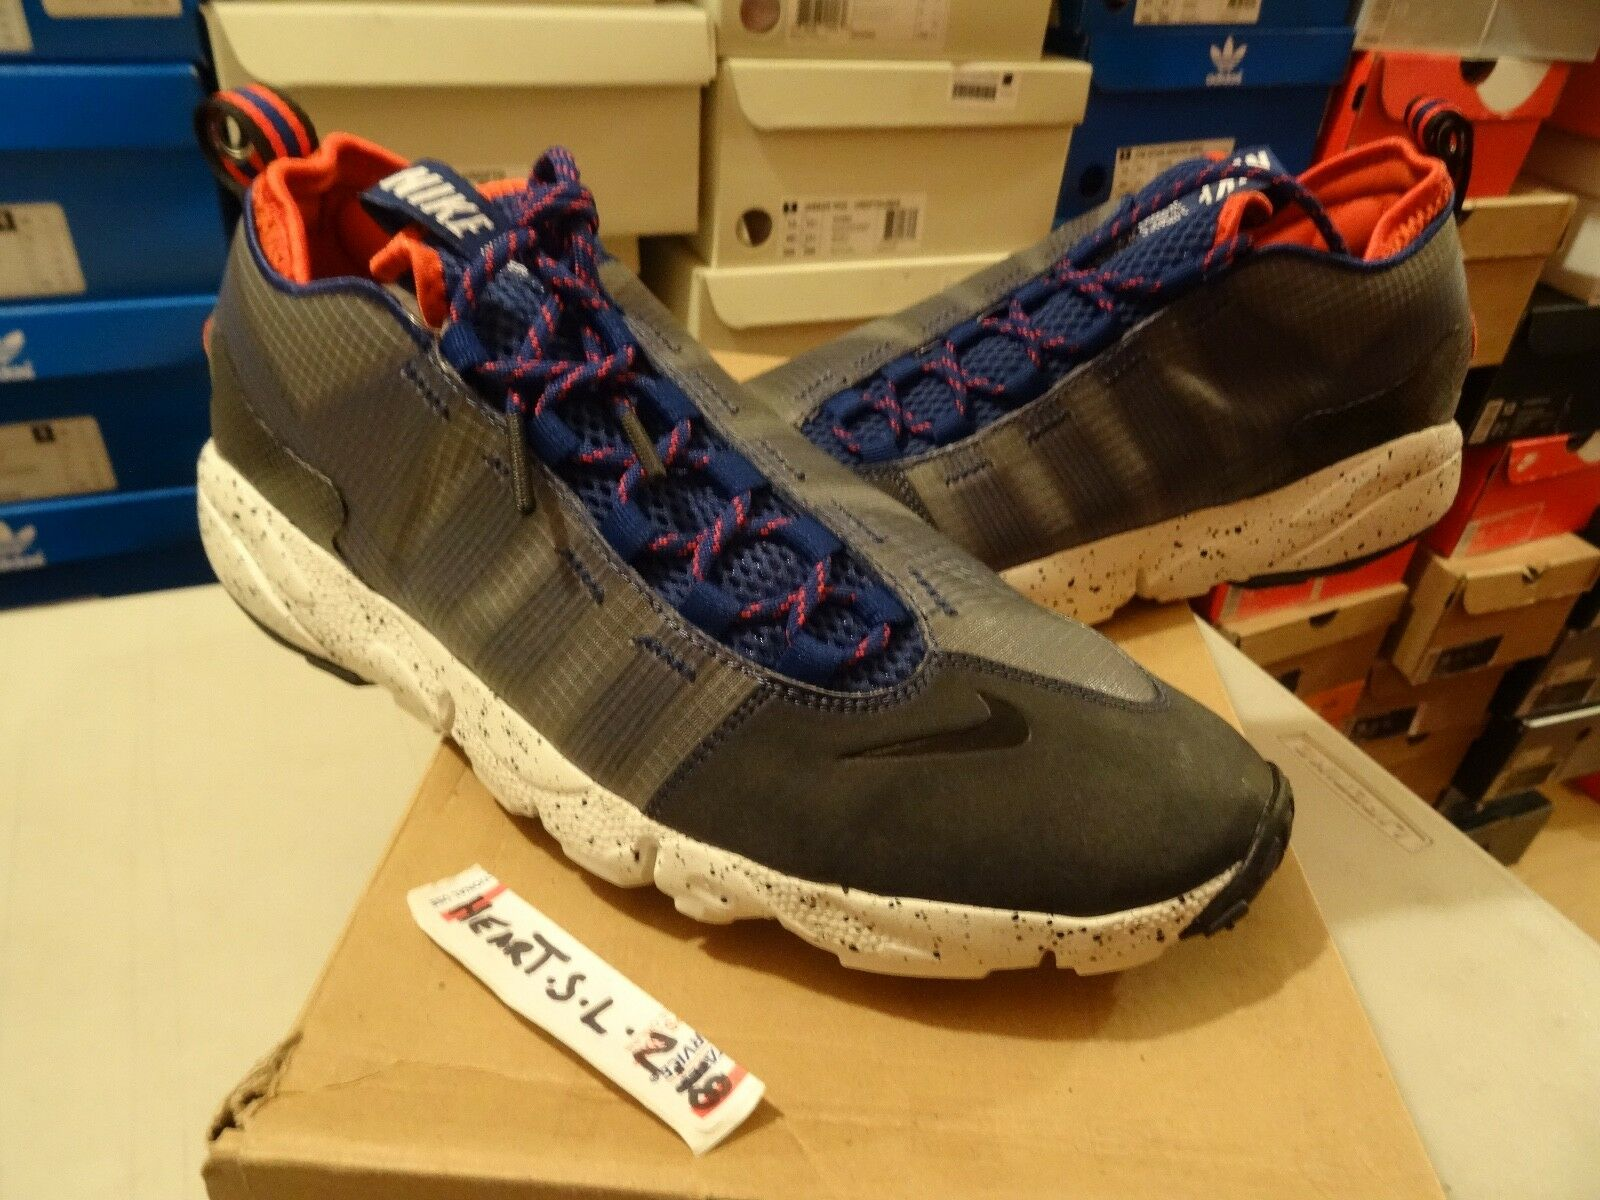 NEW Nike Air MAX FOOTSCAPE MOTION CLIMBERS PACK GREY blueE 397817 003 SZ 10 SB